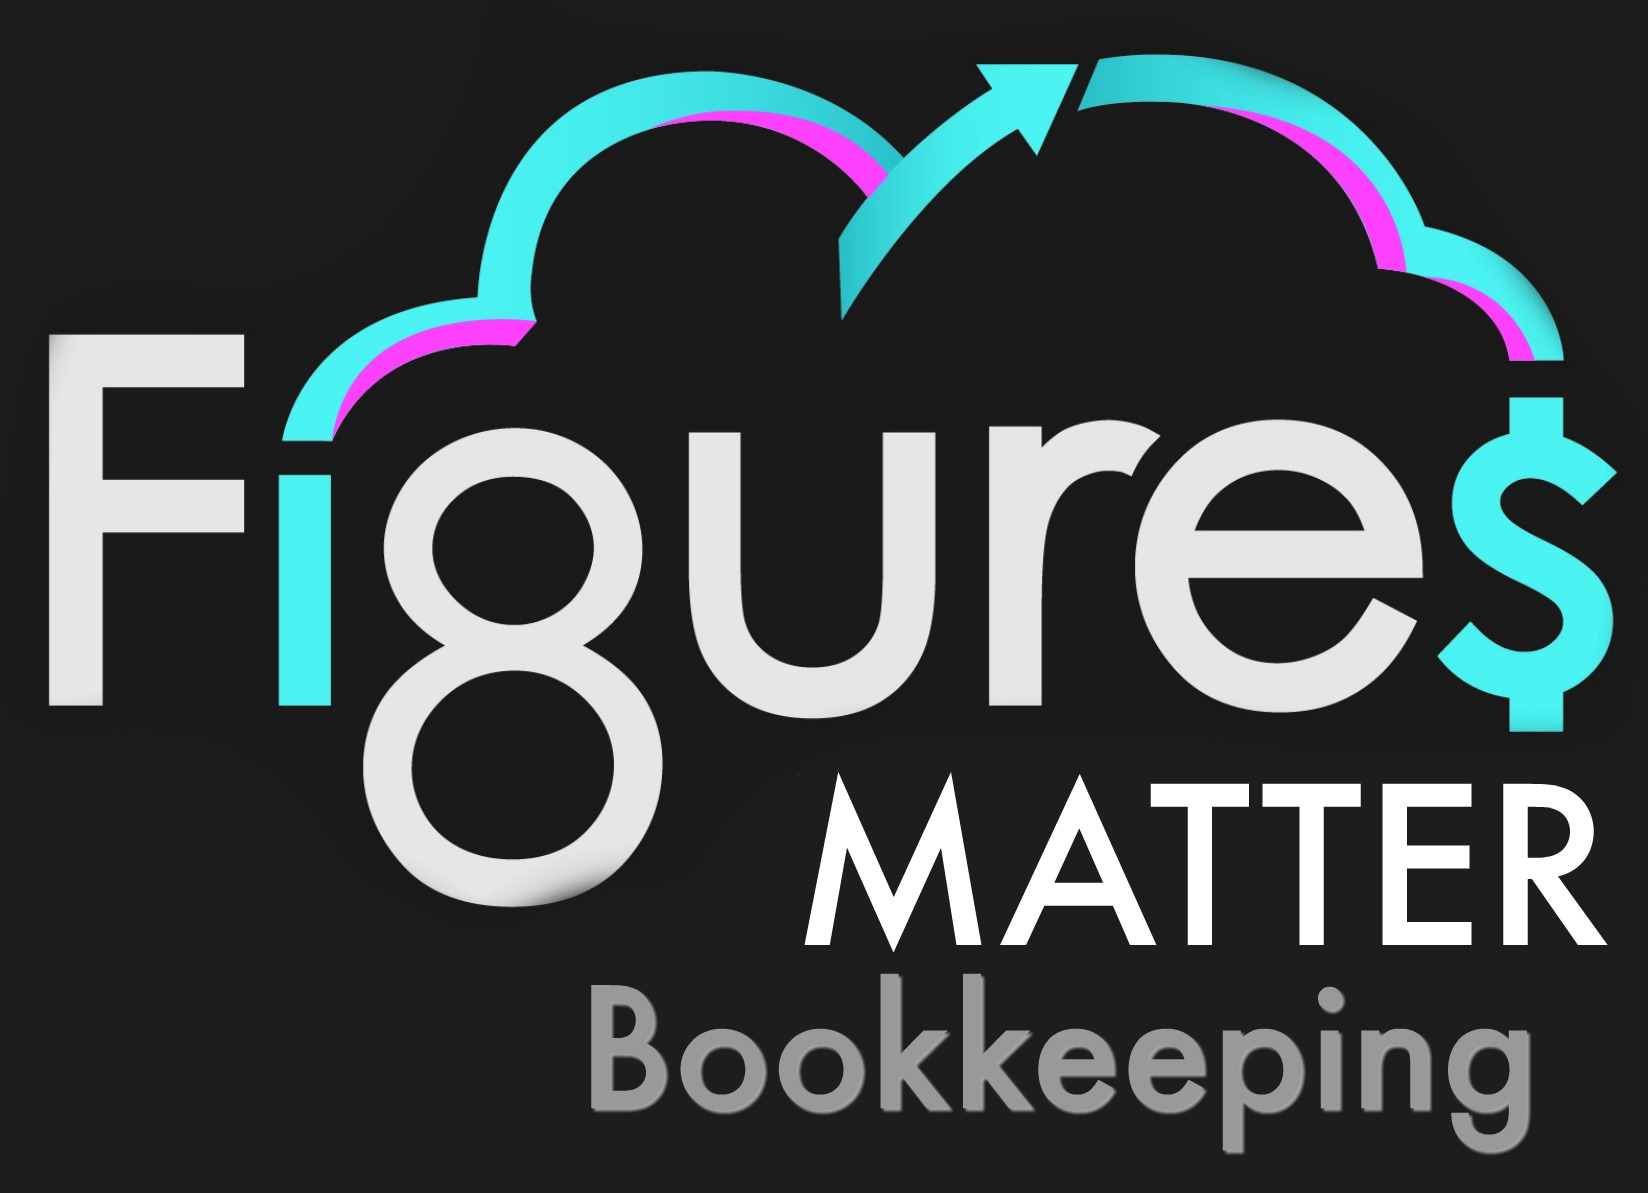 Figures Matter Bookkeeping - Logo - Business in Networking group.